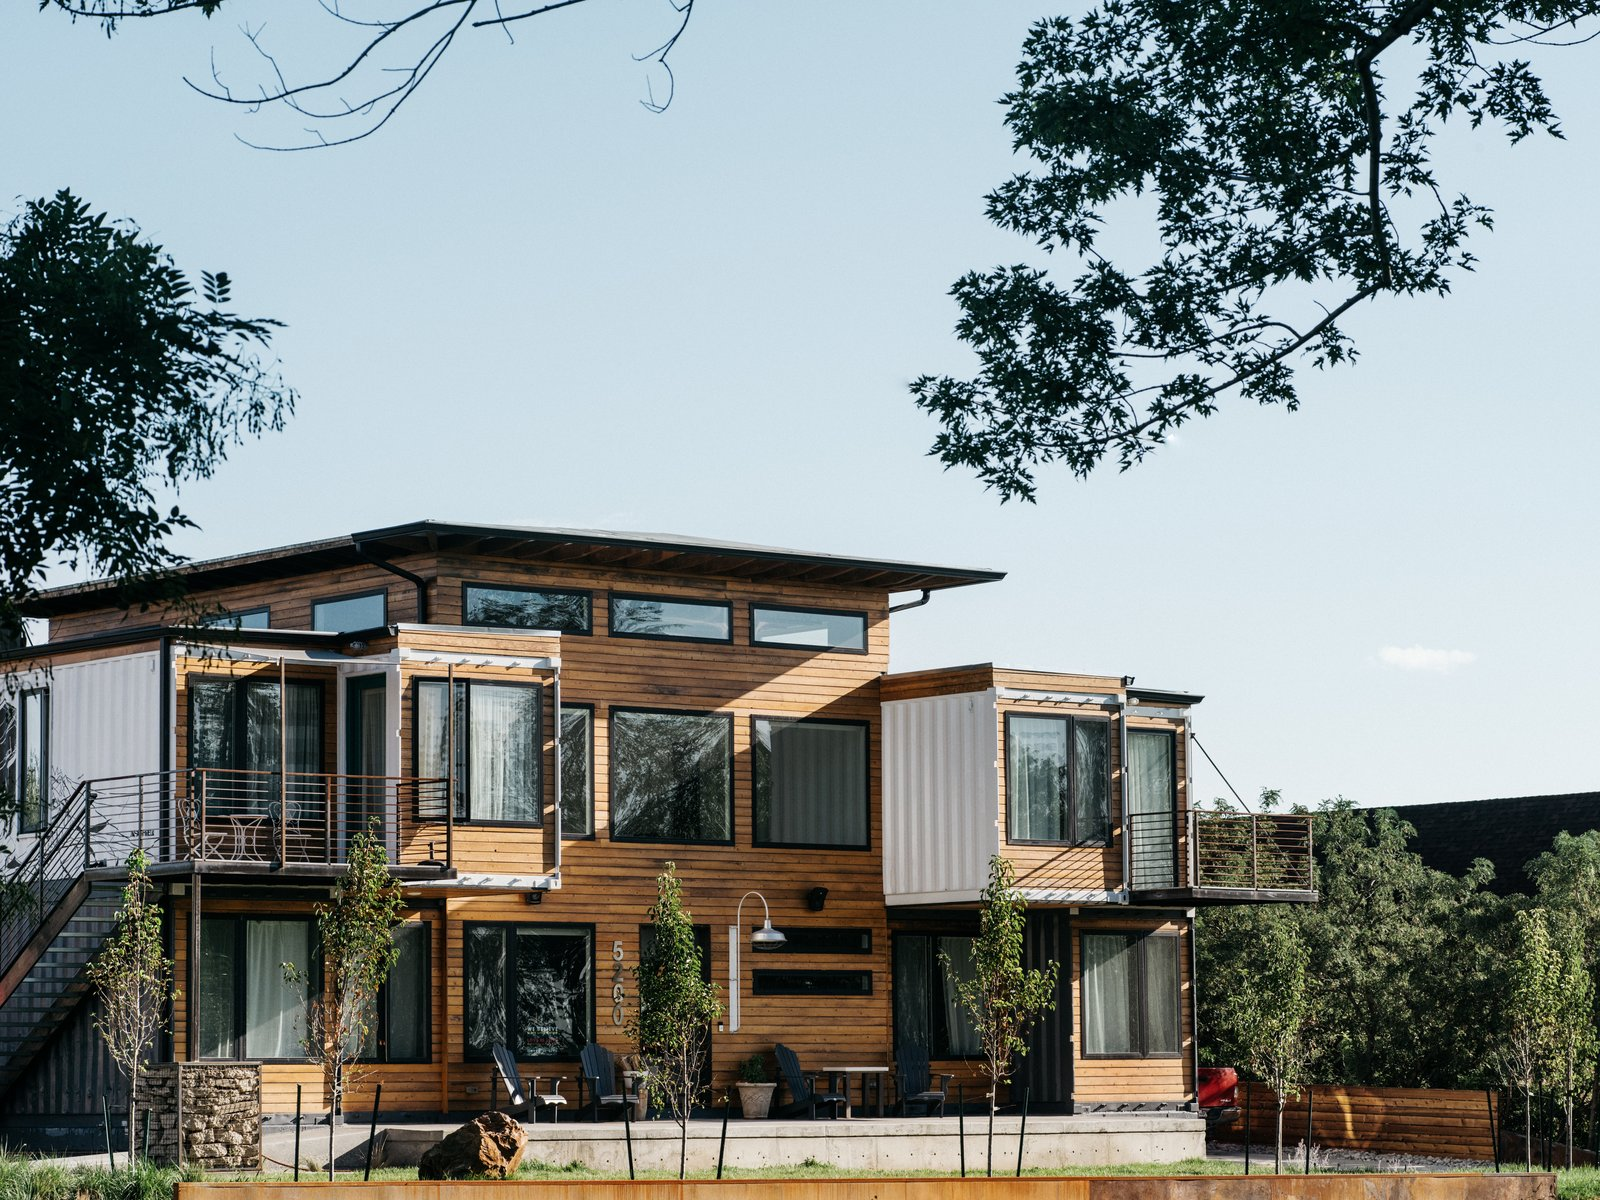 Shipping containers design and ideas for modern homes - Shipping container homes designs ...